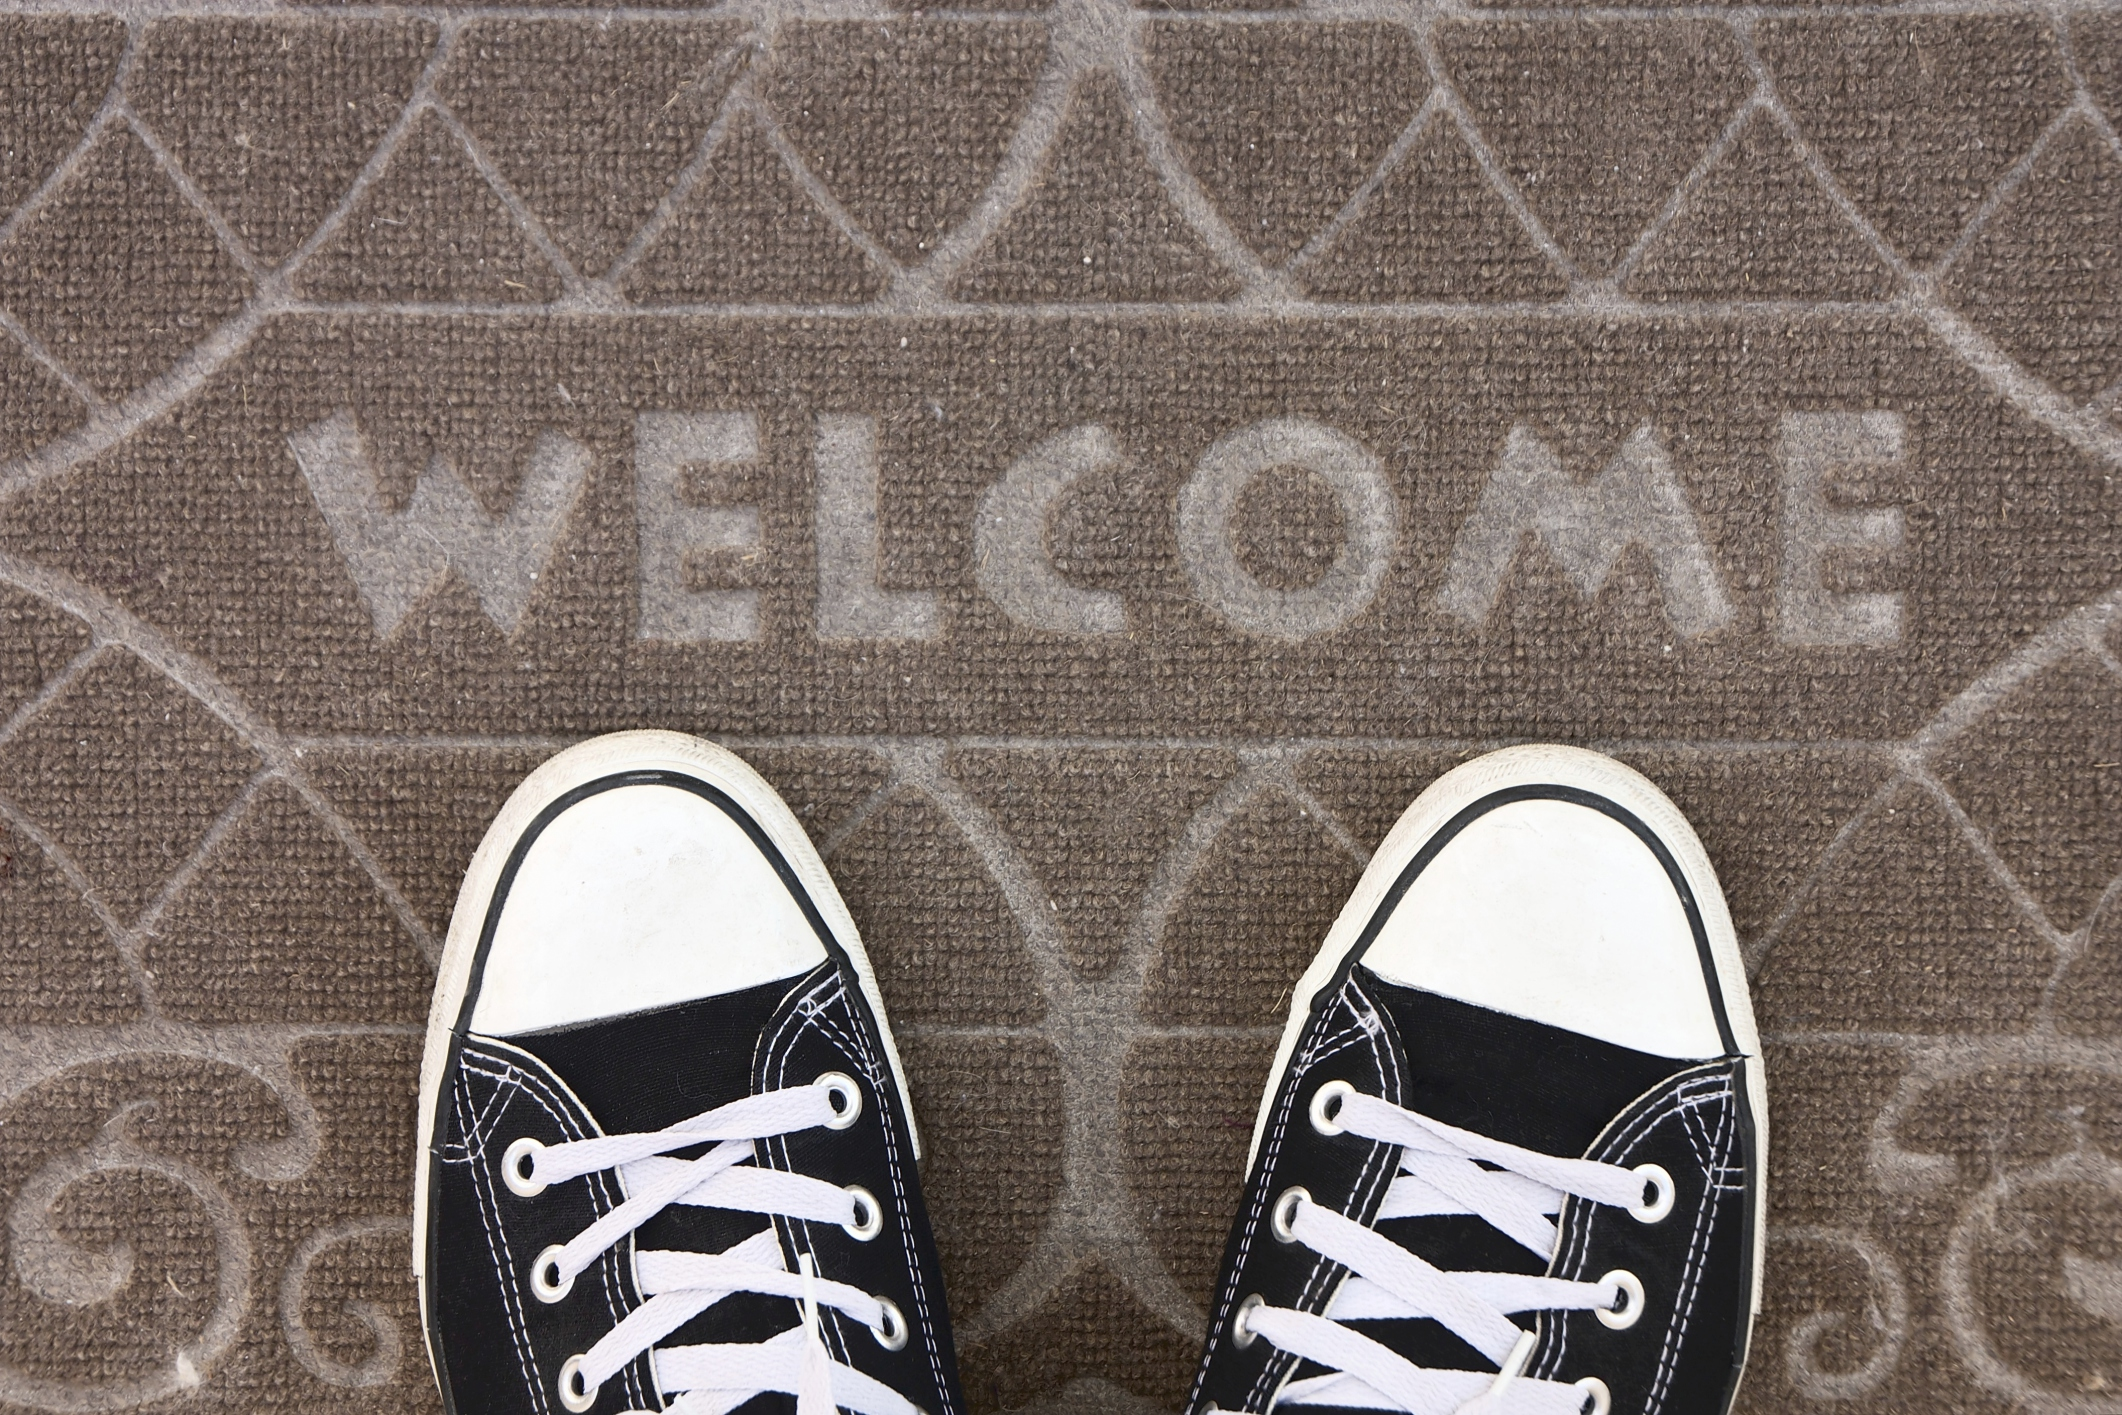 Coming Home - The Compliance and Ethics Blog